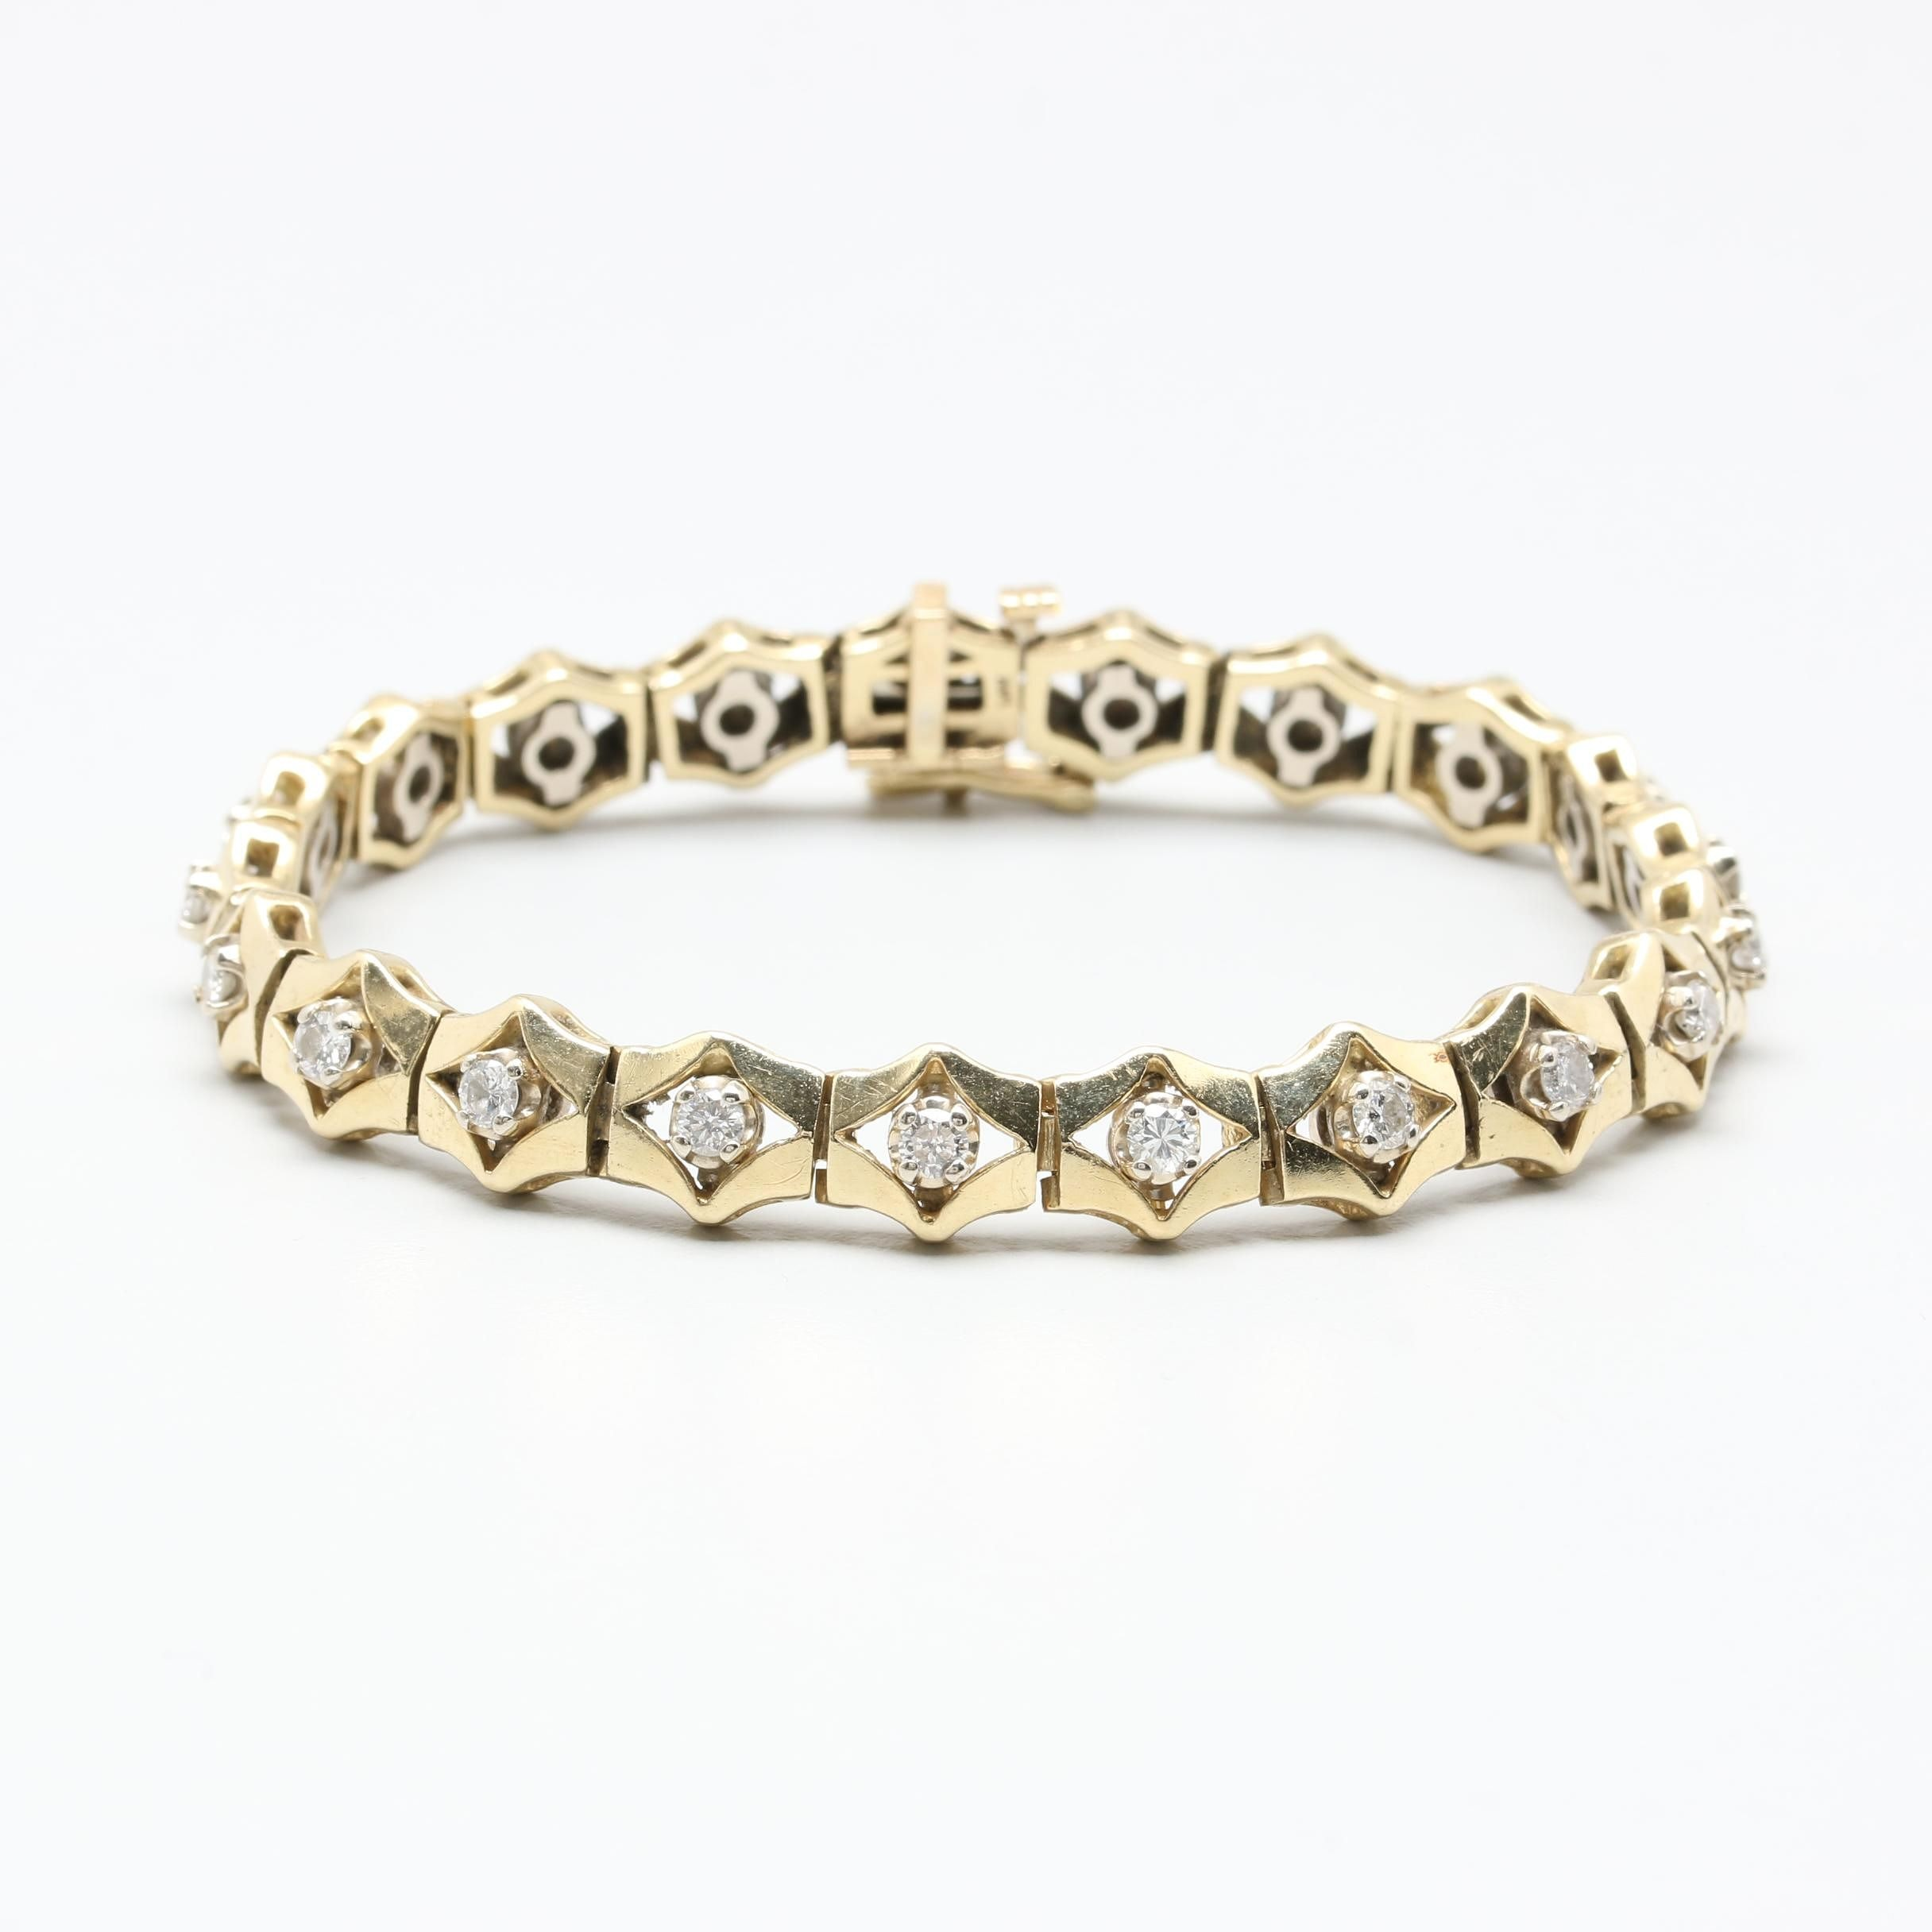 14K Yellow Gold 1.68 CTW Diamond Tennis Bracelet